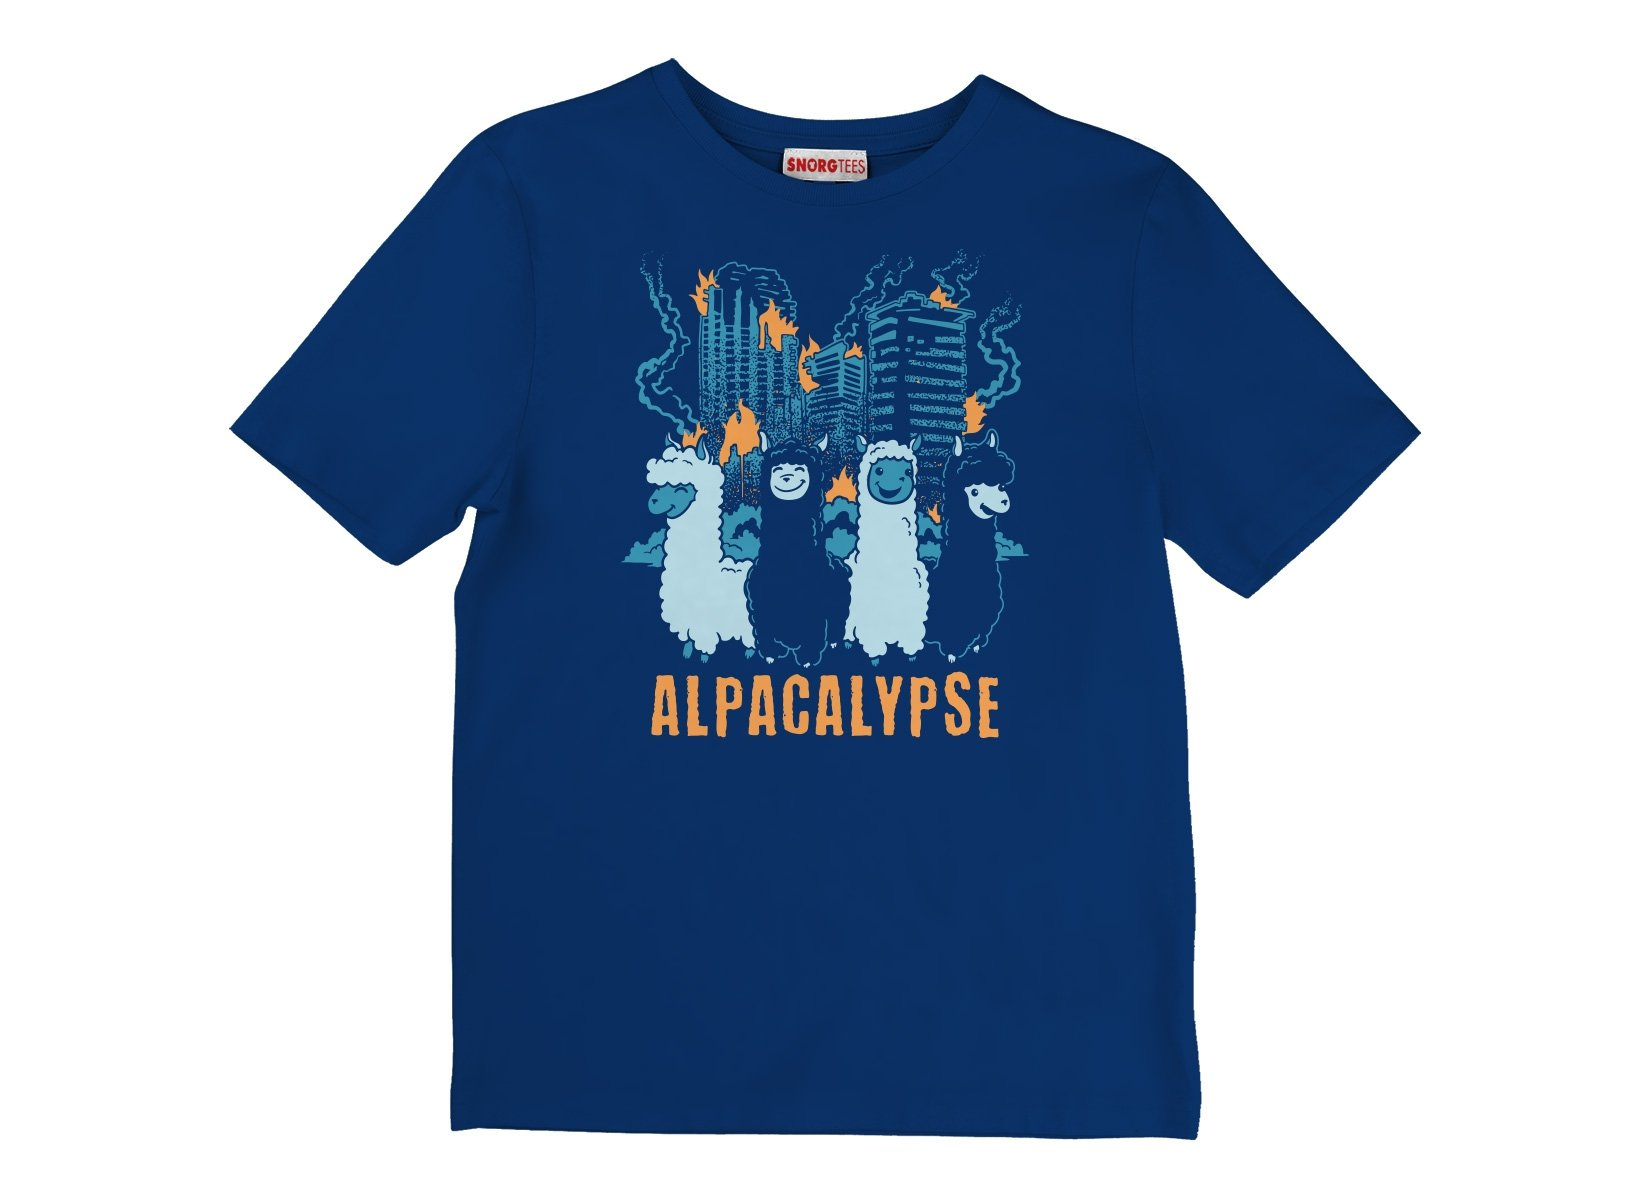 Alpacalypse on Kids T-Shirt